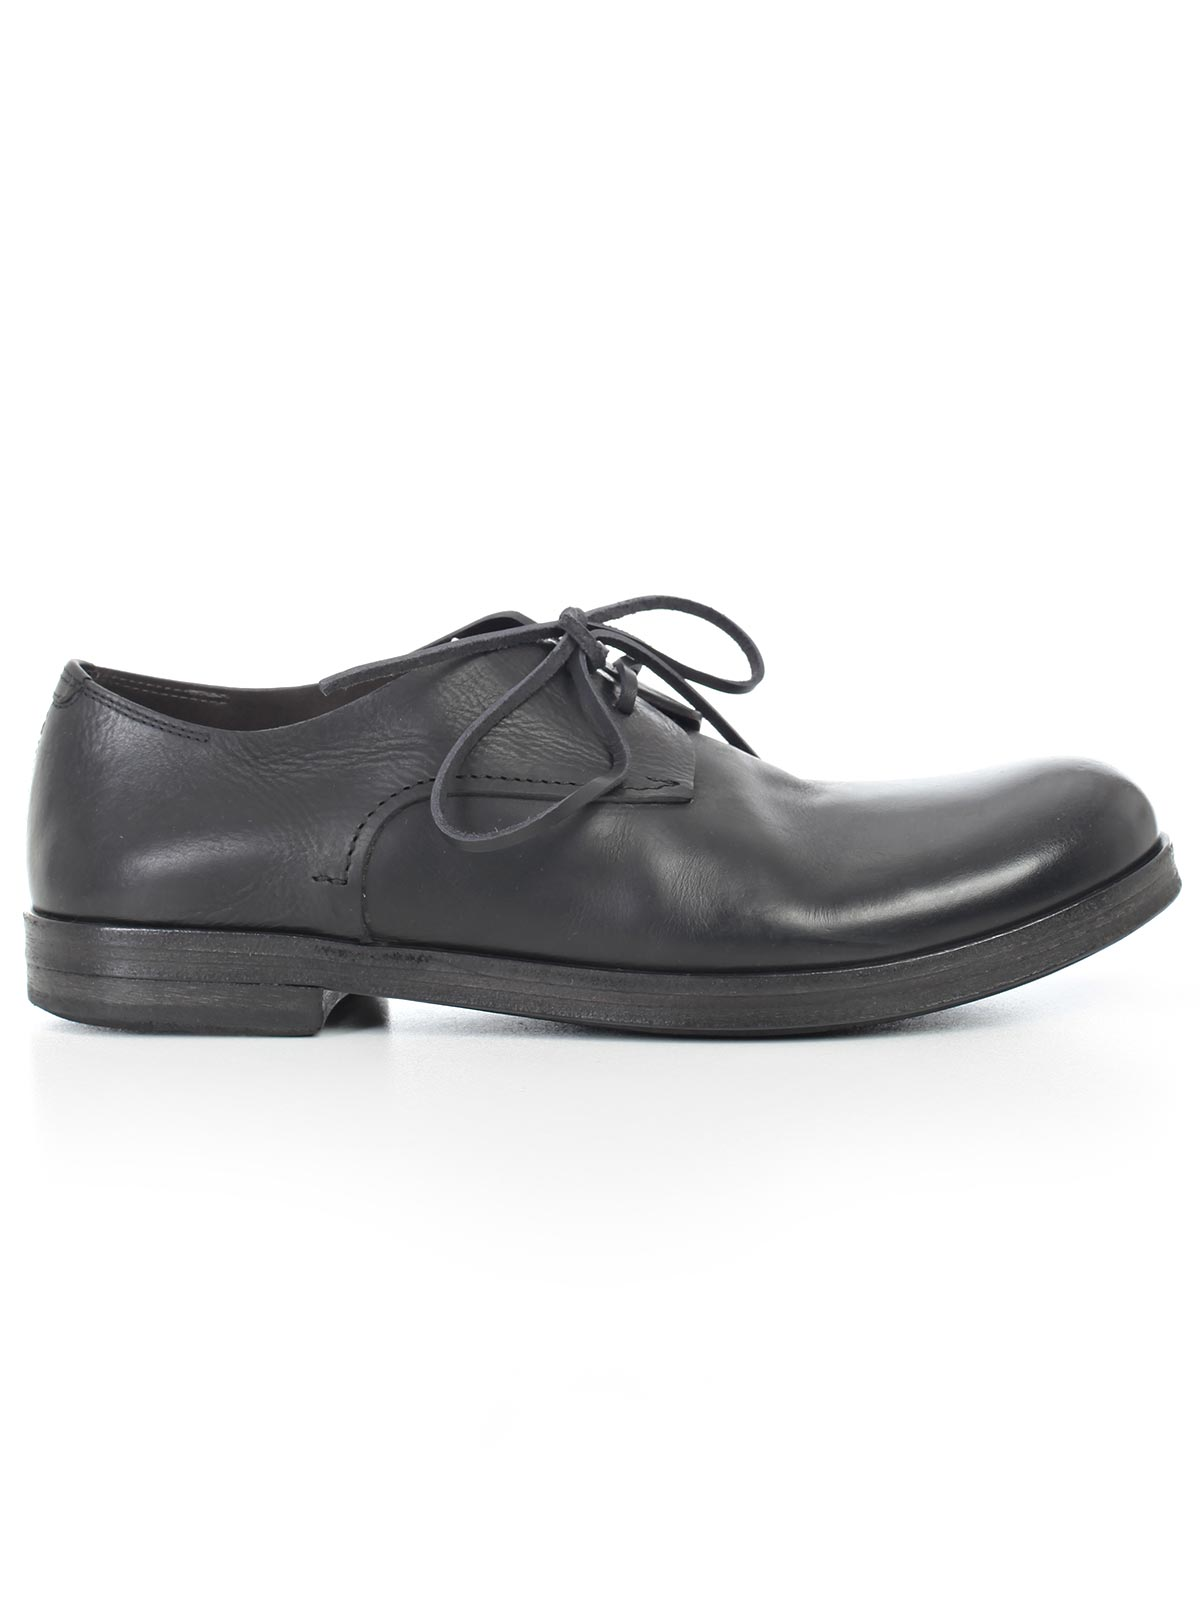 Picture of MARSELL Lace up shoes